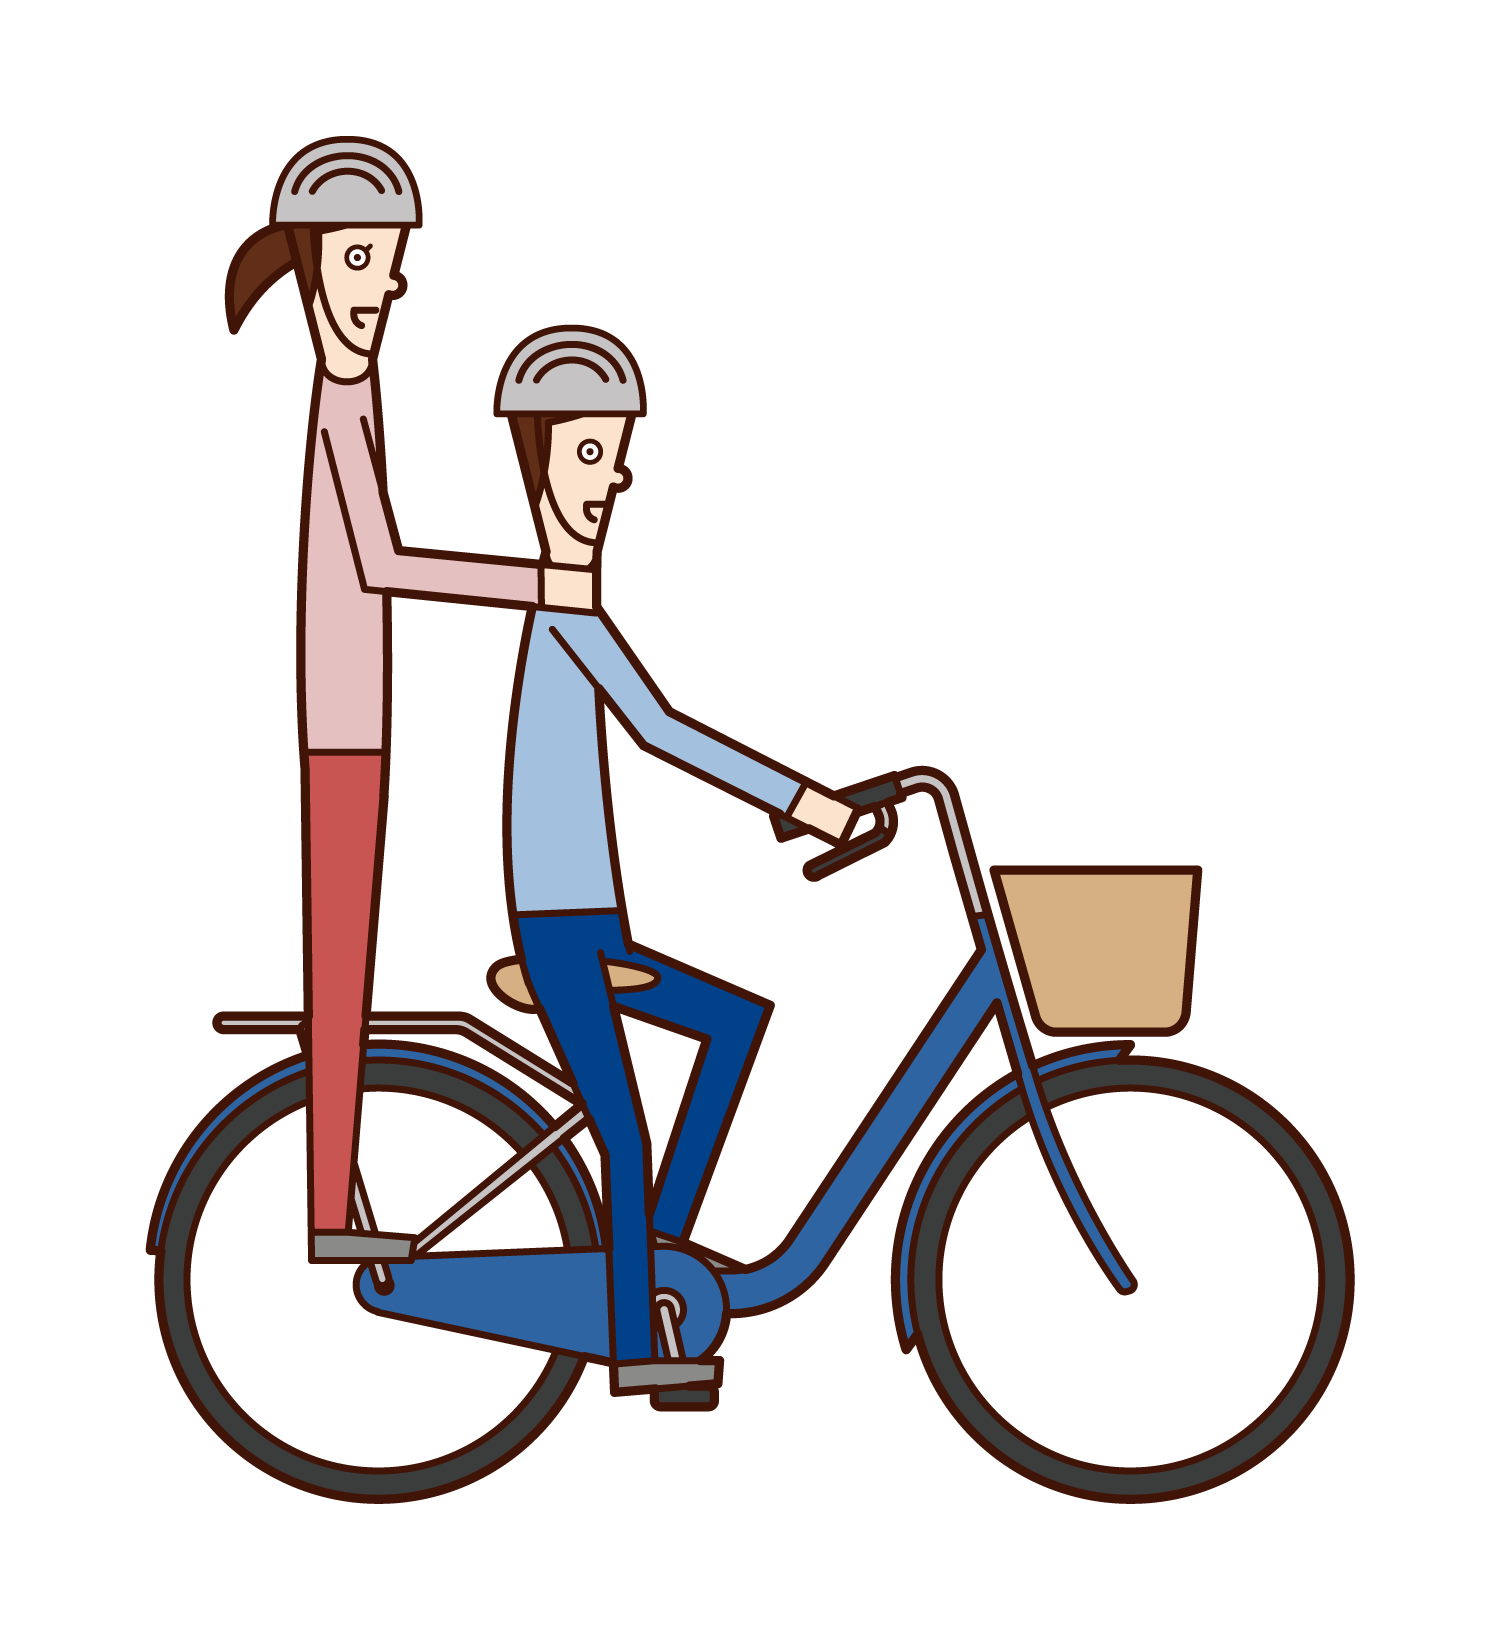 Illustration of two-seater people on a bicycle